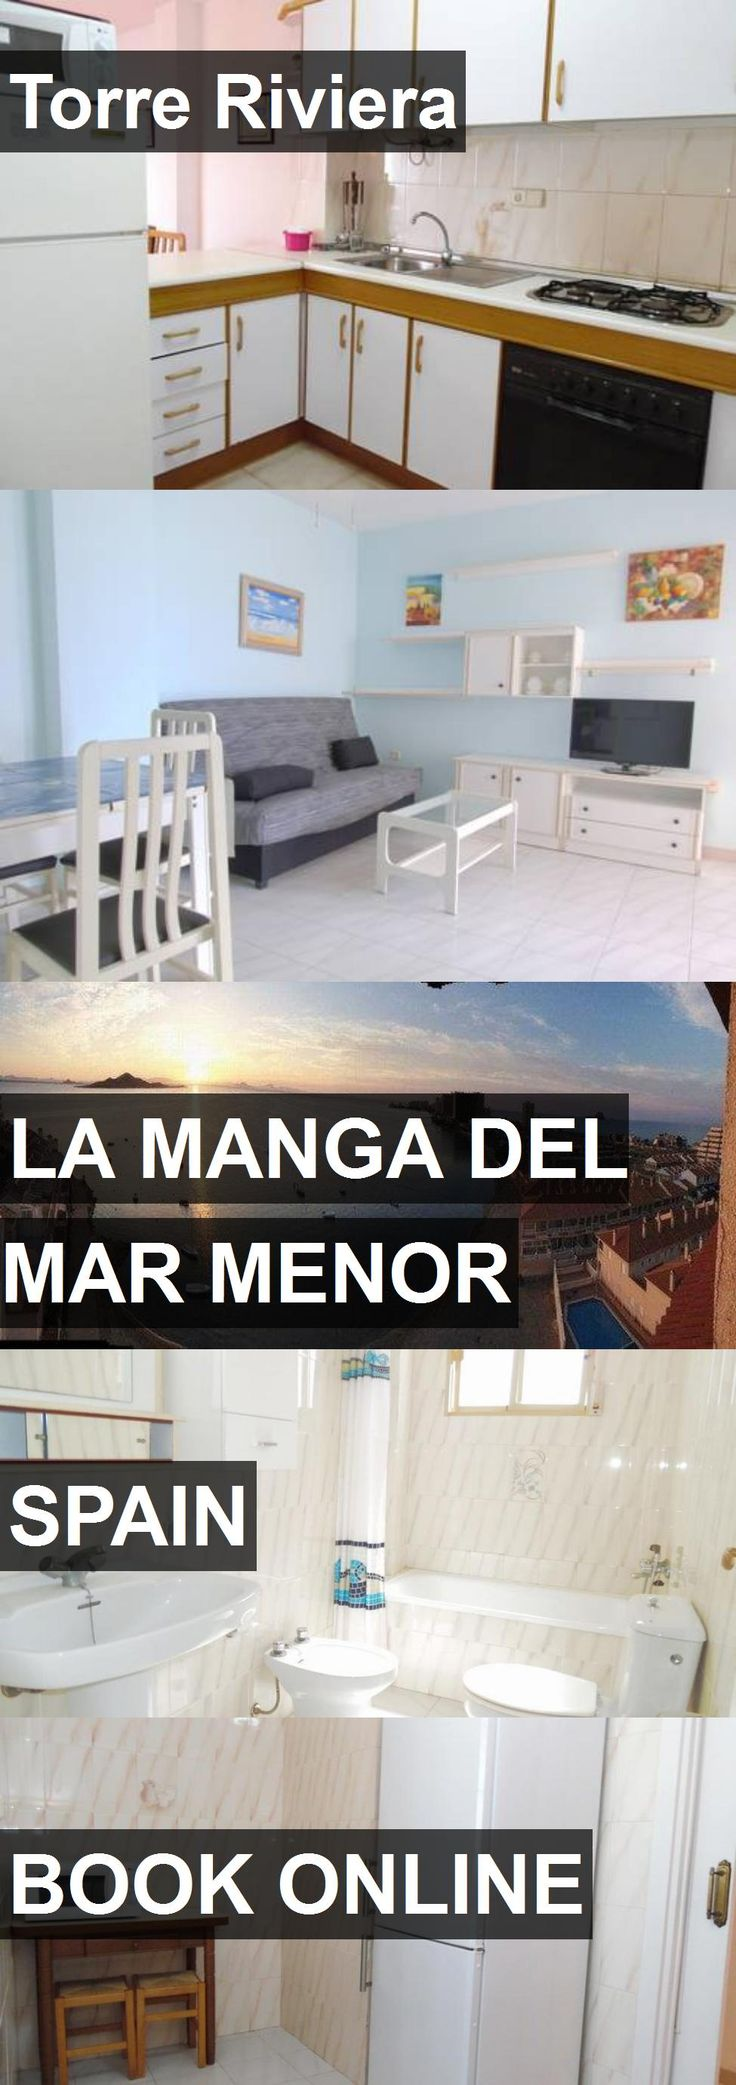 Hotel Torre Riviera in La Manga del Mar Menor, Spain. For more information, photos, reviews and best prices please follow the link. #Spain #LaMangadelMarMenor #travel #vacation #hotel